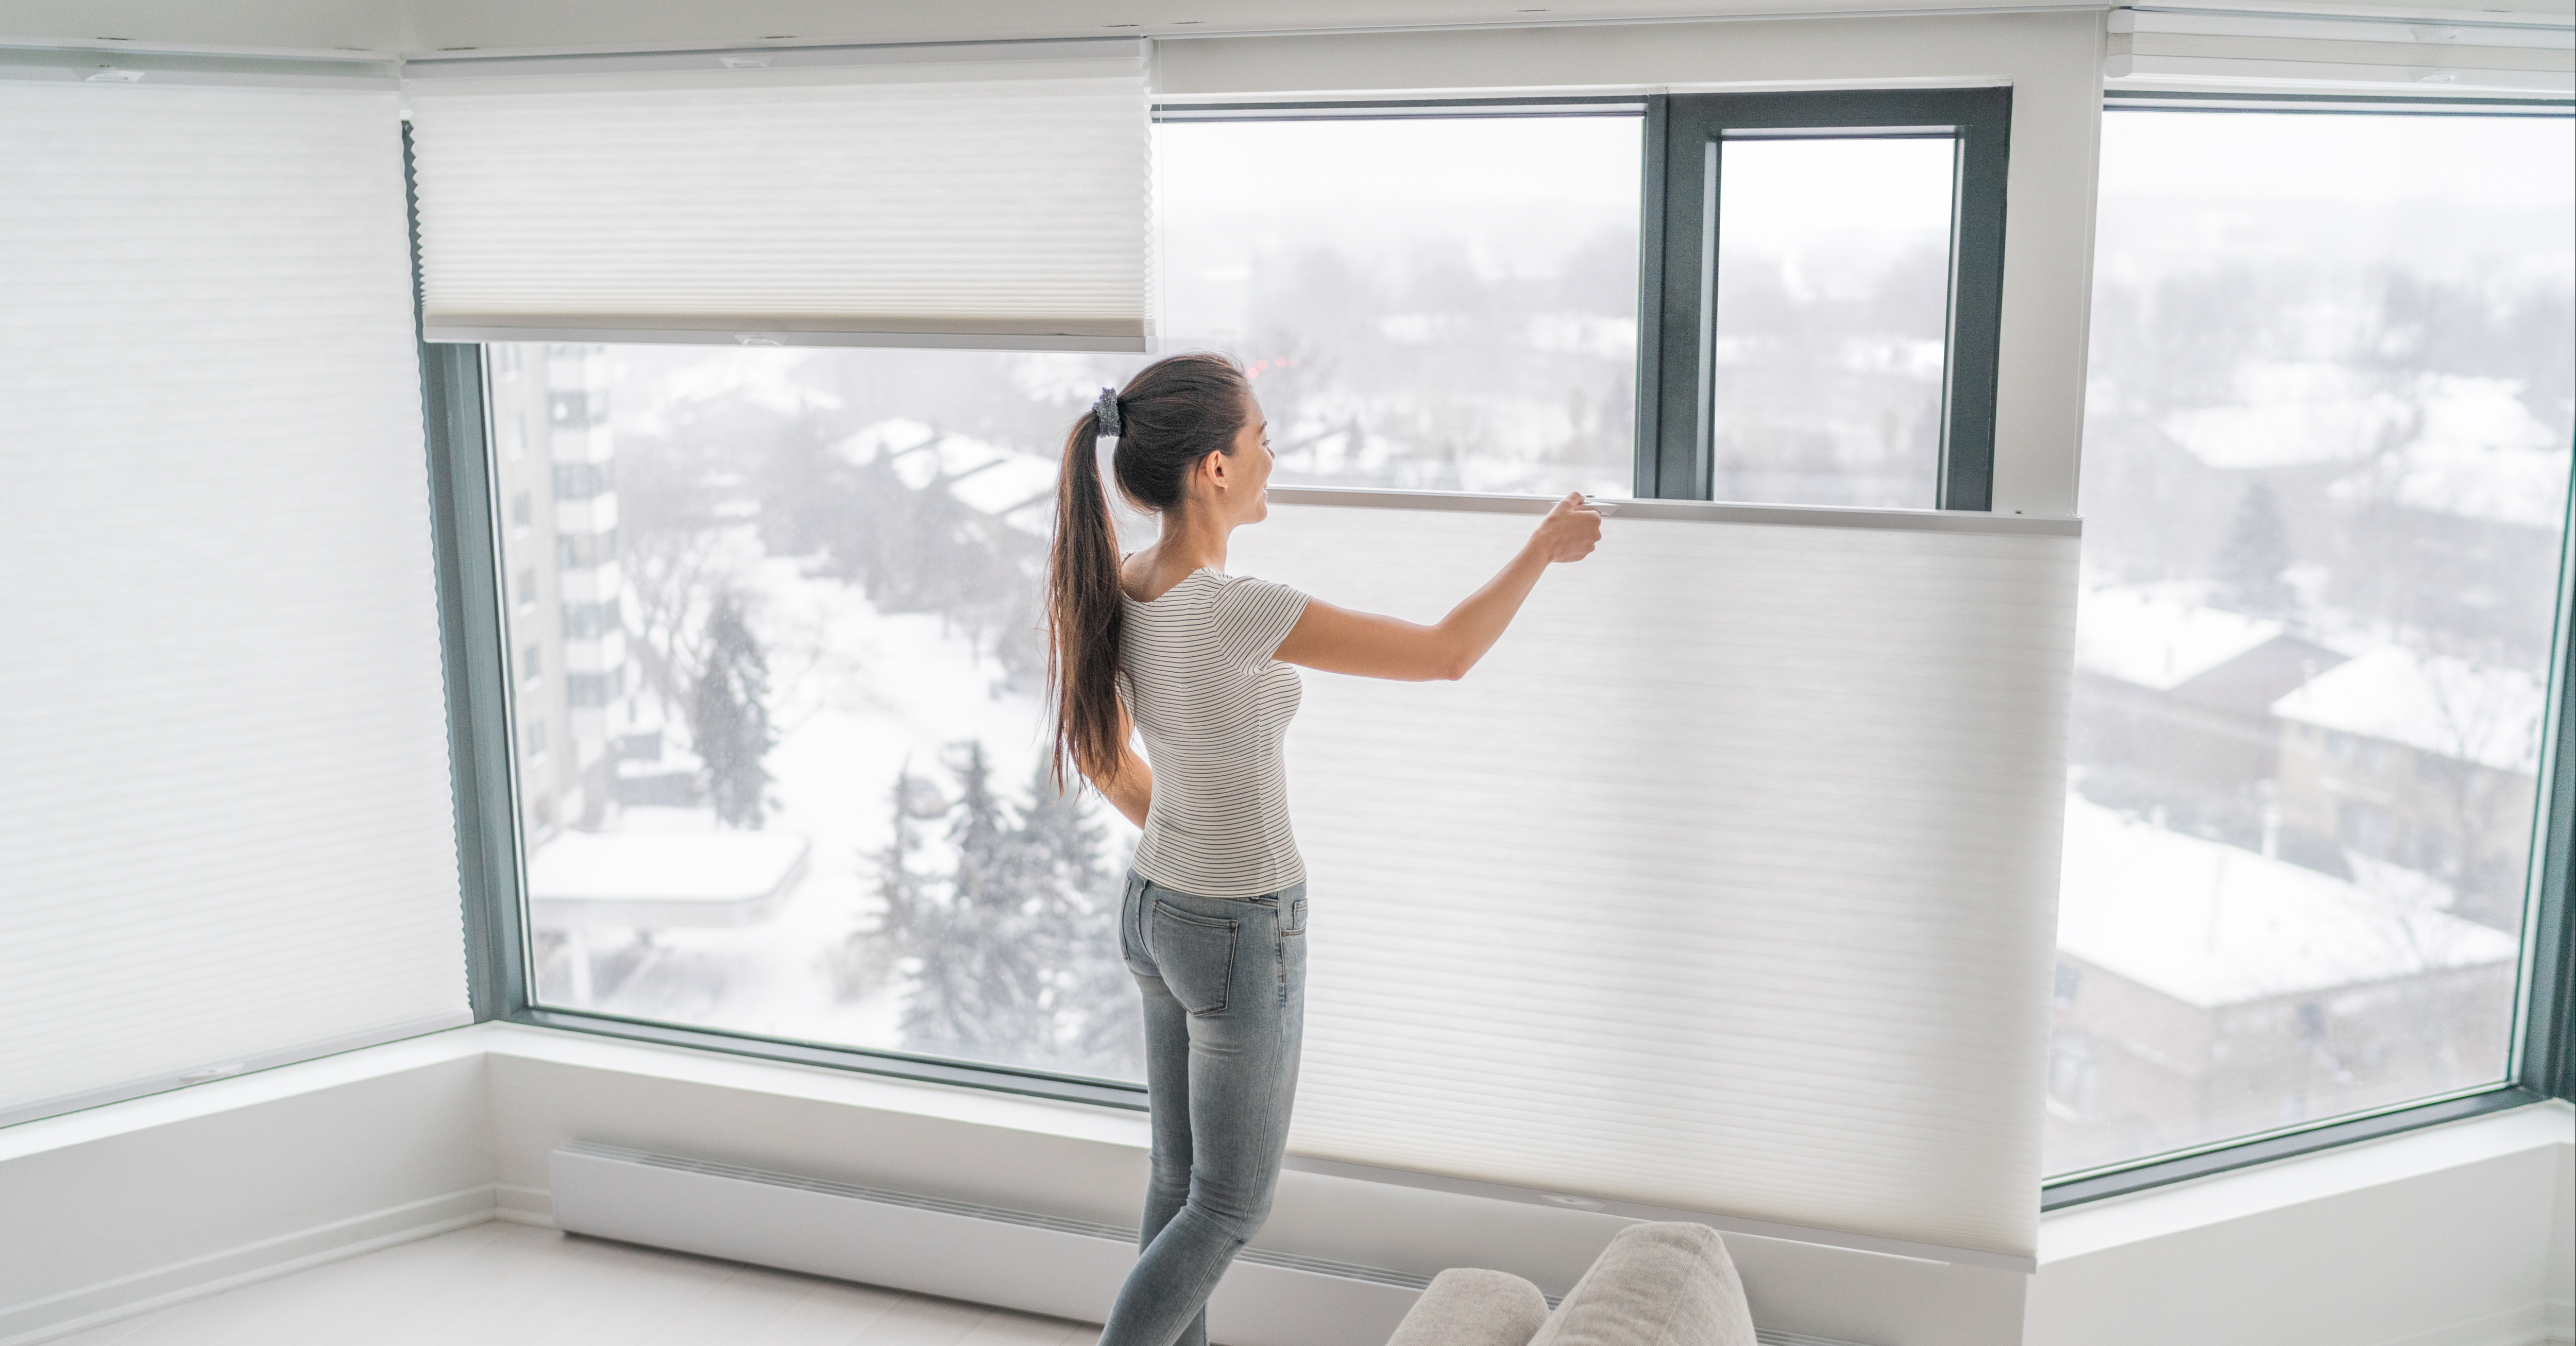 Woman opening new window shades